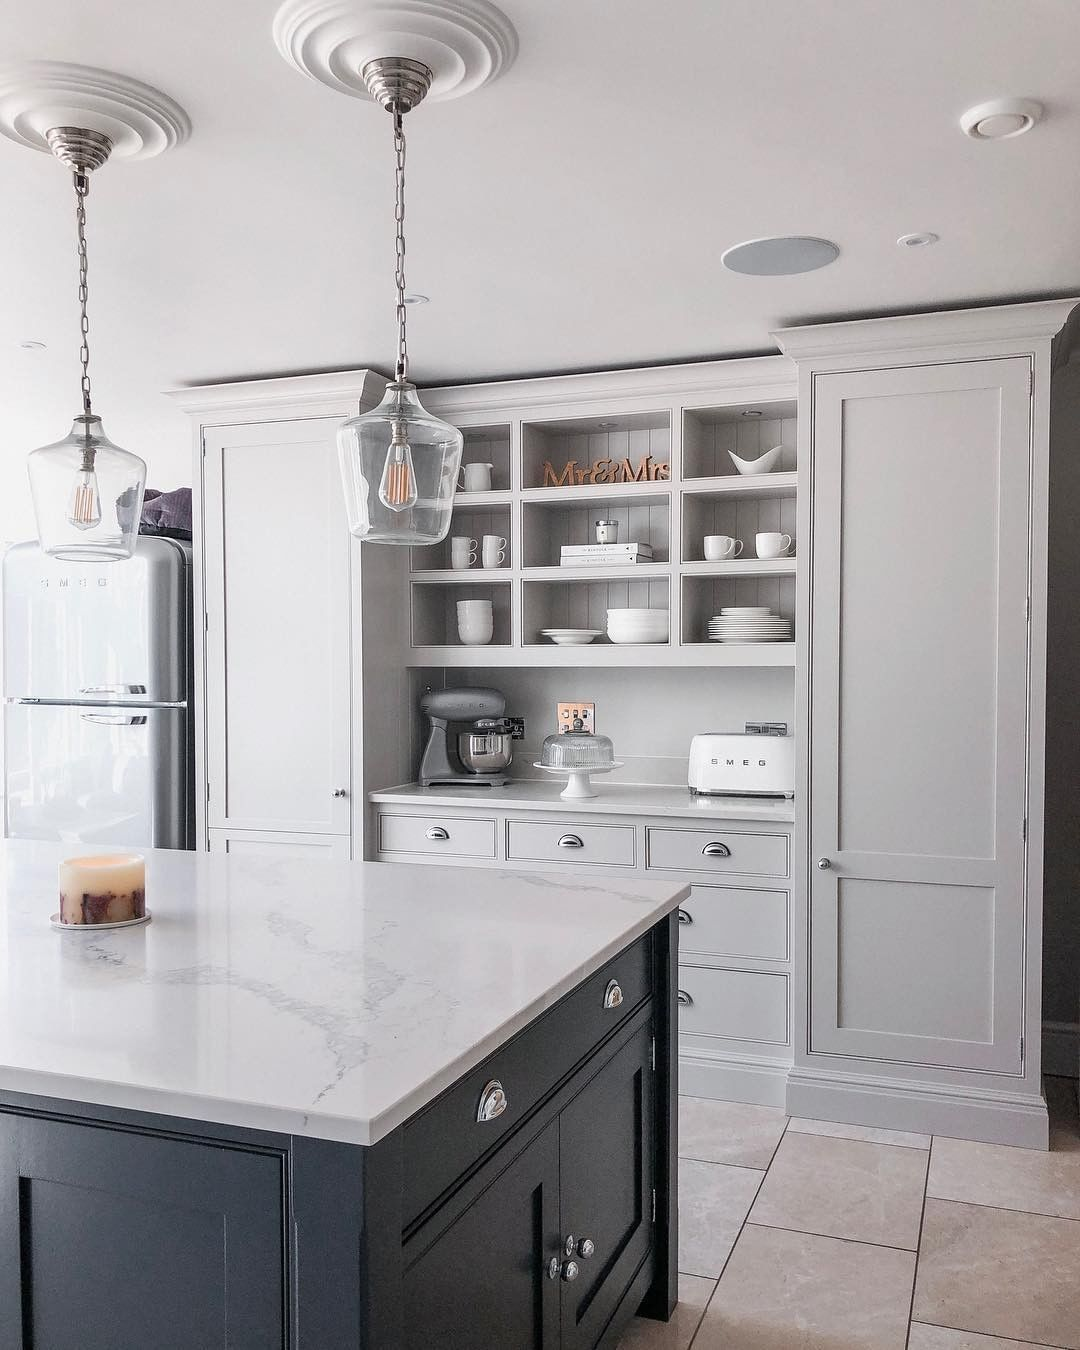 Laura ashley on instagram ucultimate kitchens goal our ockley